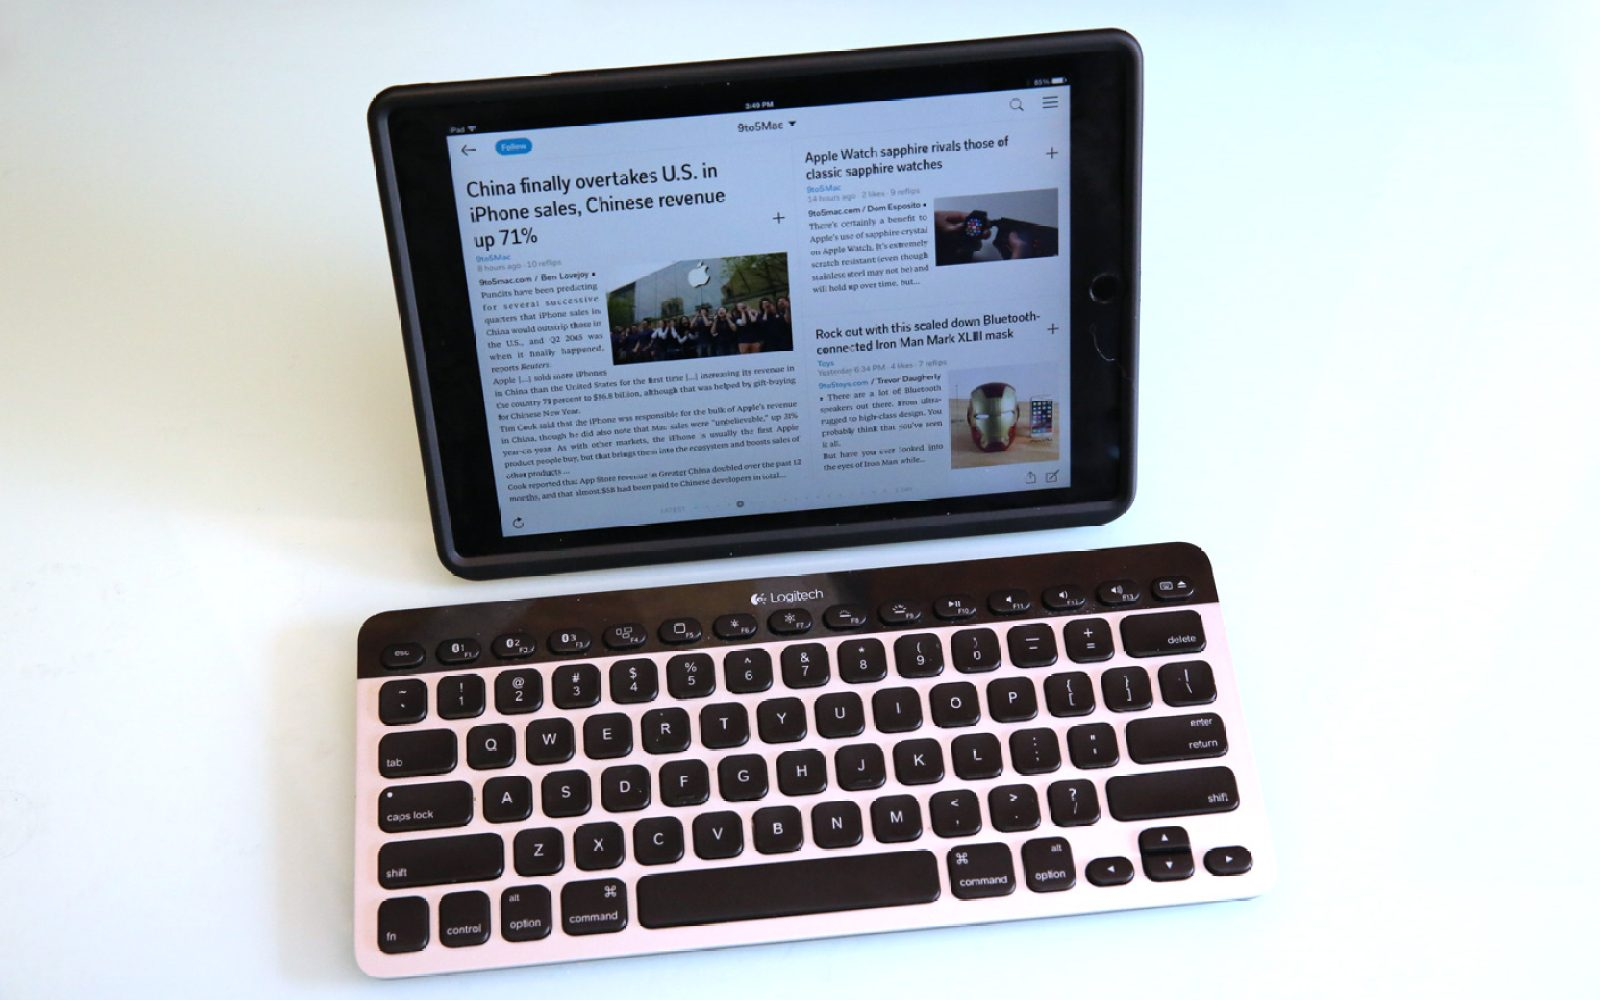 The best Mac and iPad keyboards - 9to5Mac